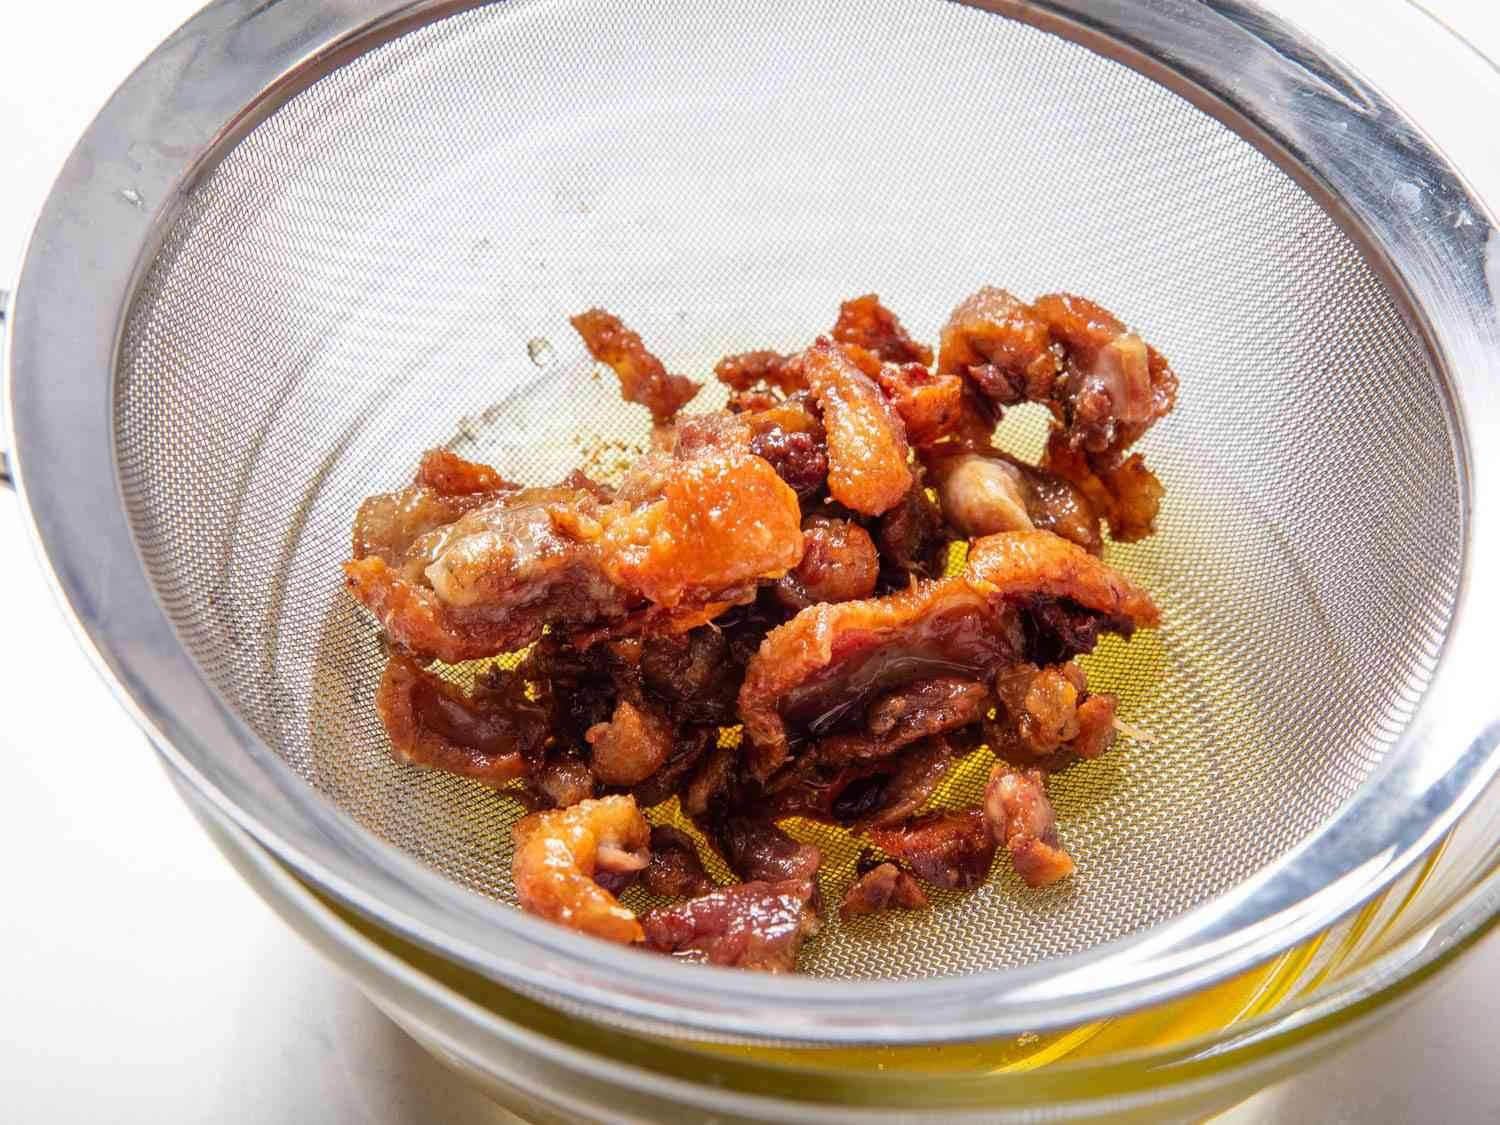 Duck cracklings in a fine-mesh strainer.